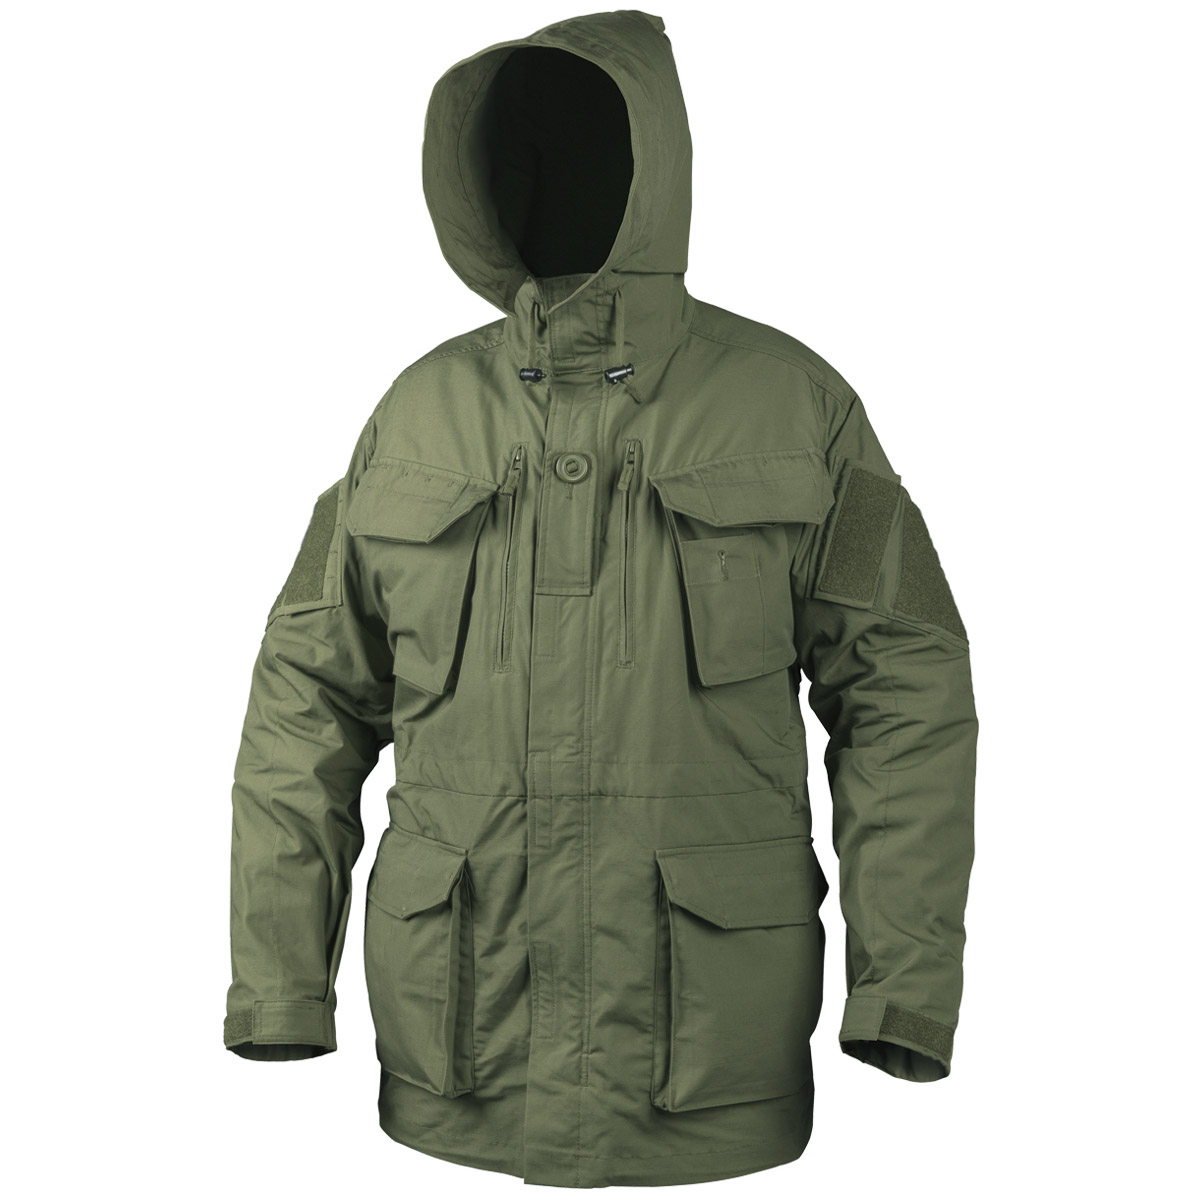 Details about Helikon Military PCS Smock Windproof Mens Jacket Hunting Army  Parka Olive Green d7960bd55fb